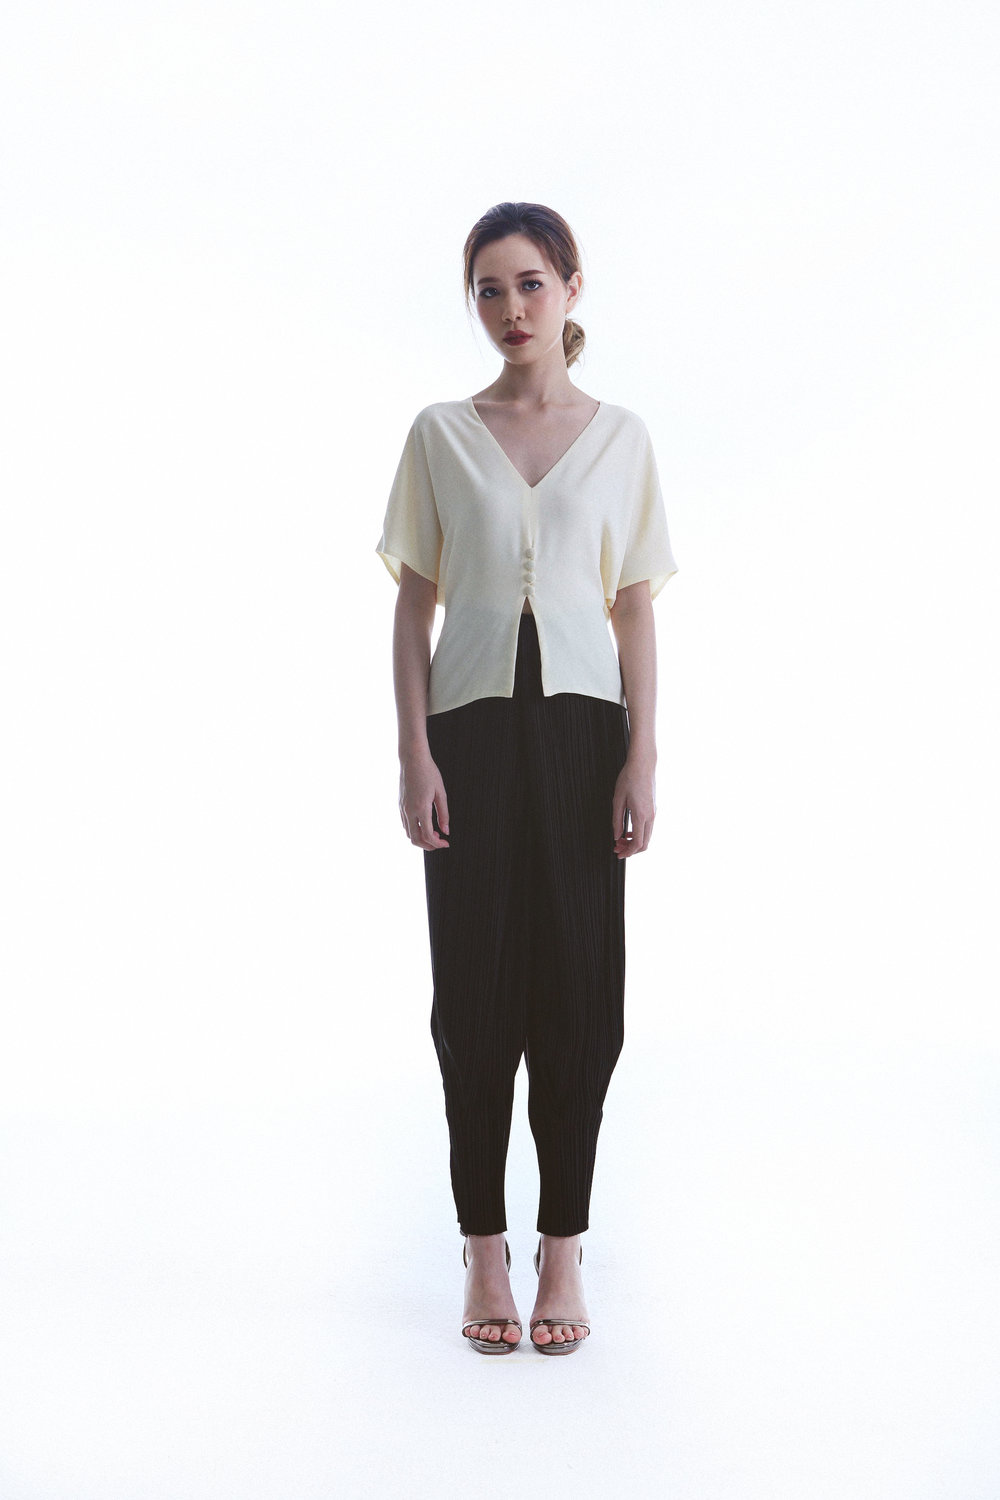 Saint Top worn with Laid Pants